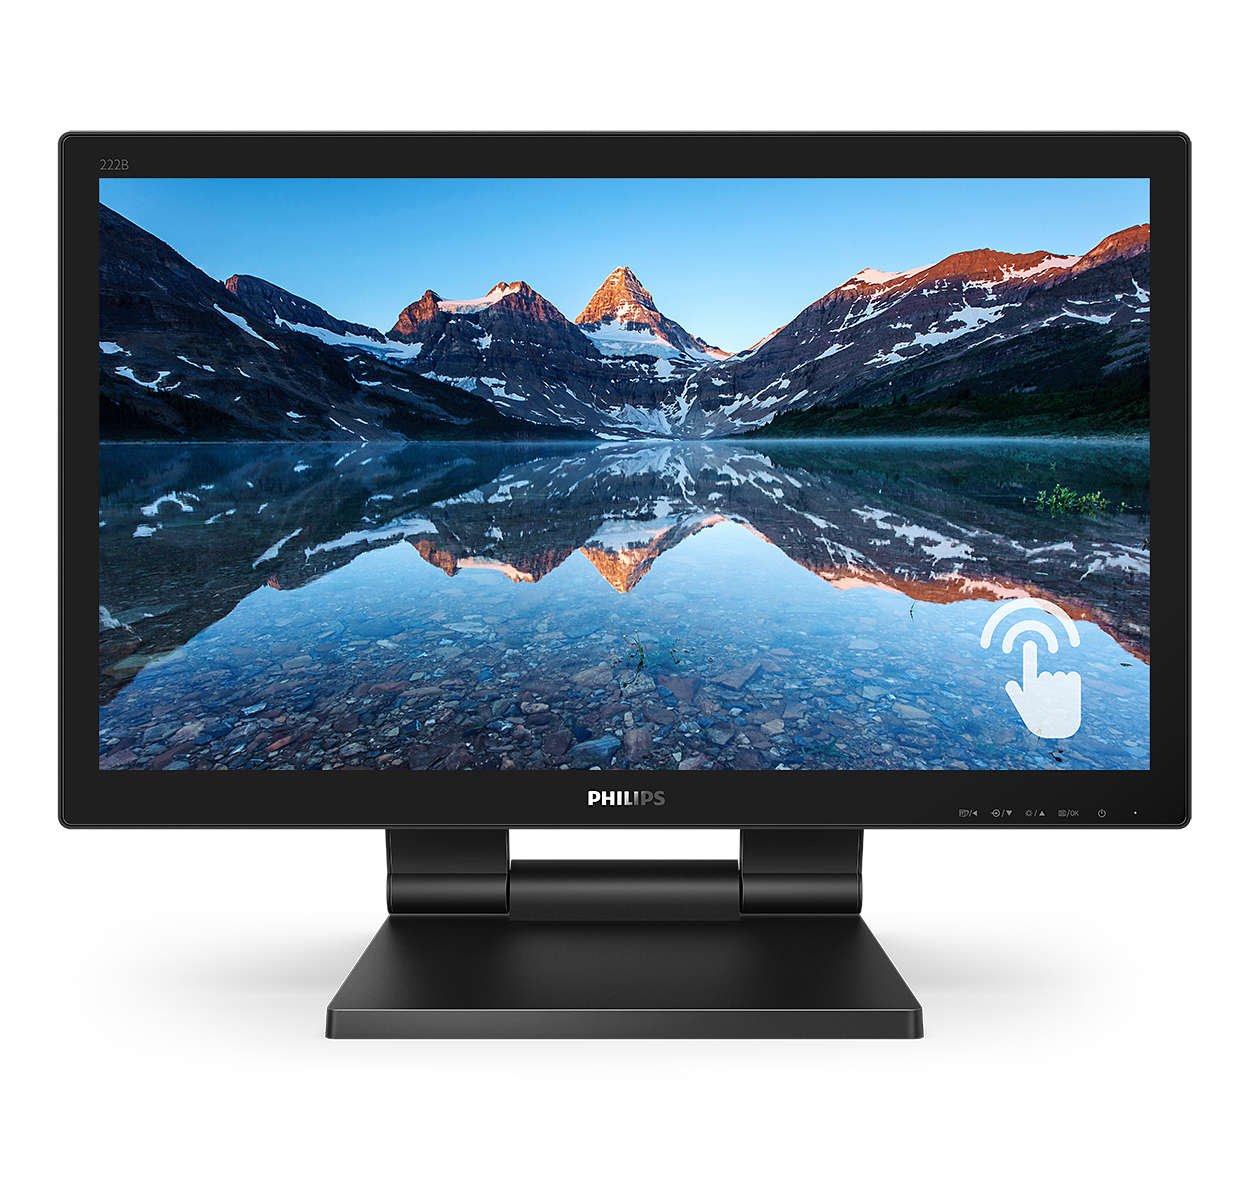 Monitor Touchscreen Philips 222B9T 21.5 inch 1ms Black